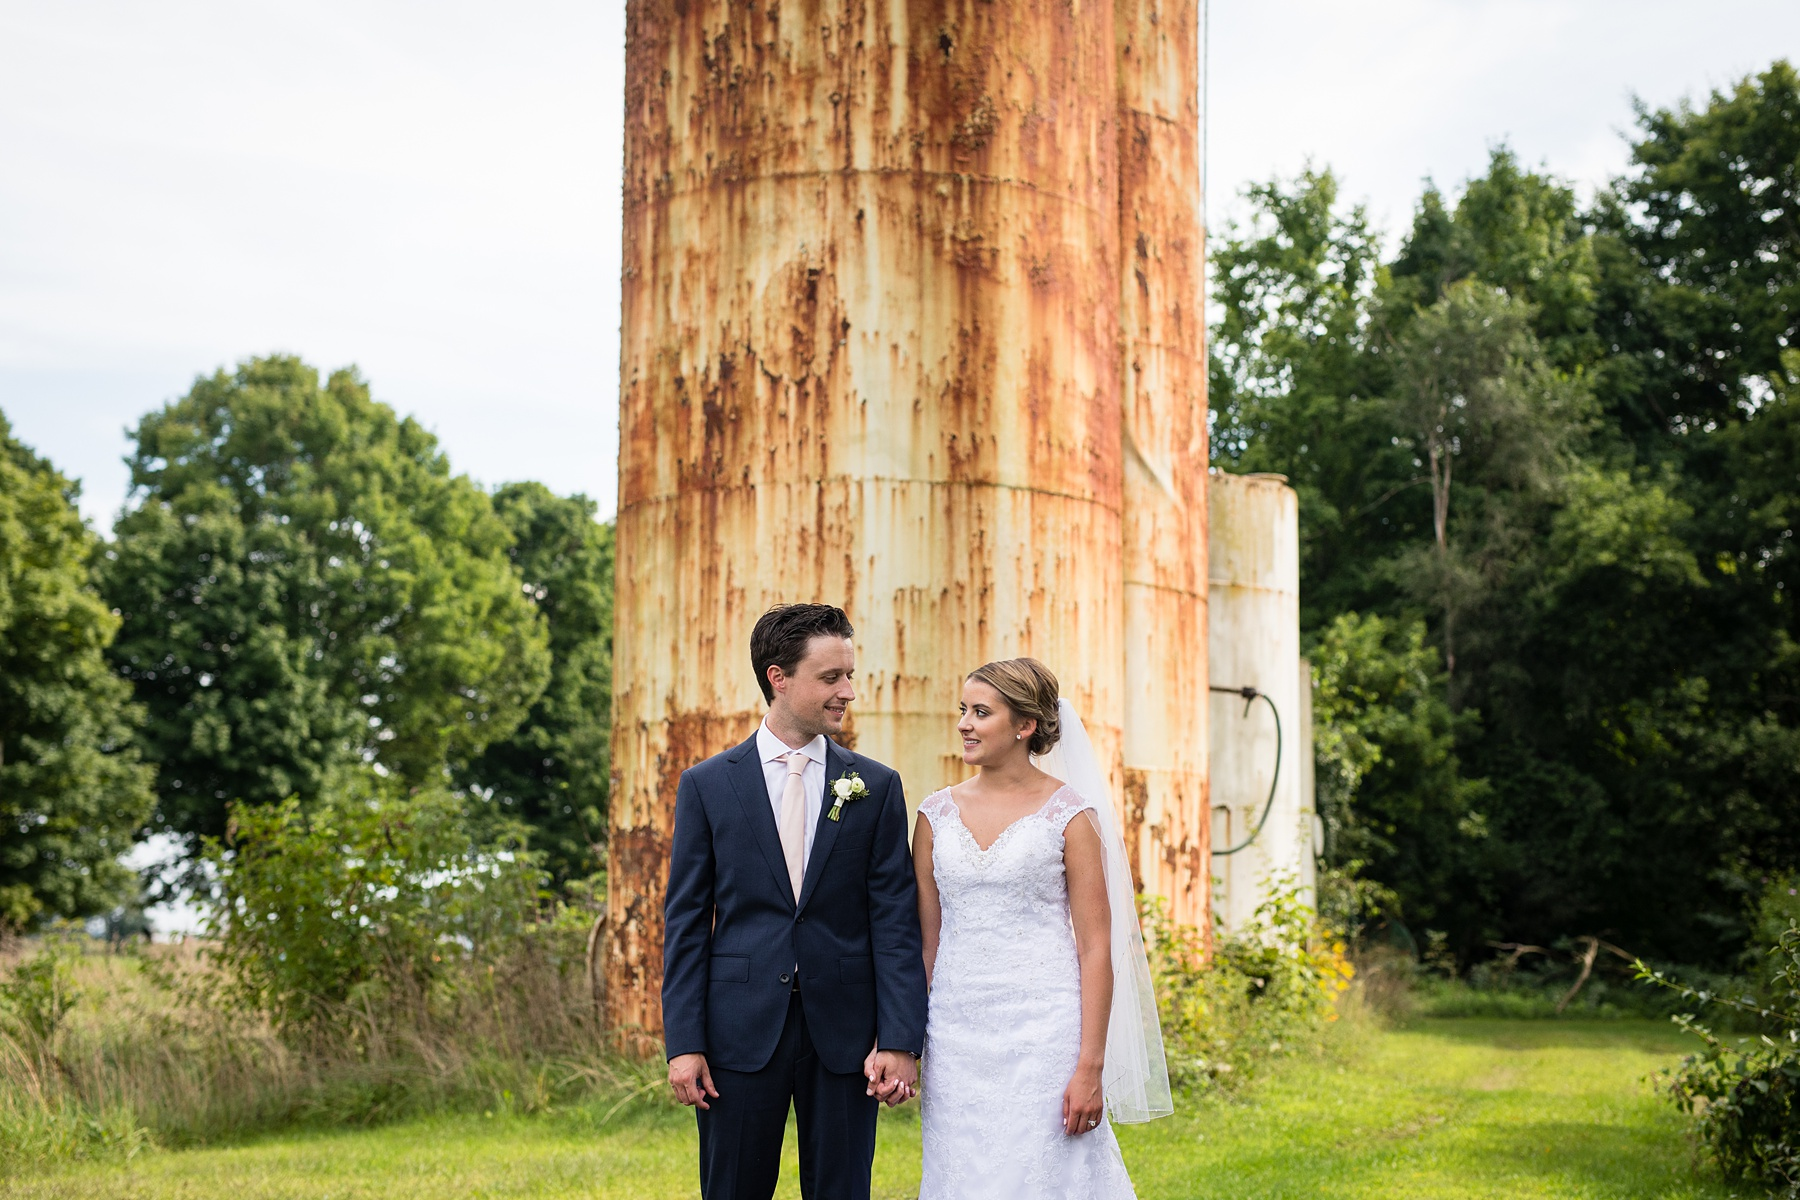 Brandon_Shafer_Photography_Emily_Steve_Bay_Pointe_GunLake_Wedding_0047.jpg